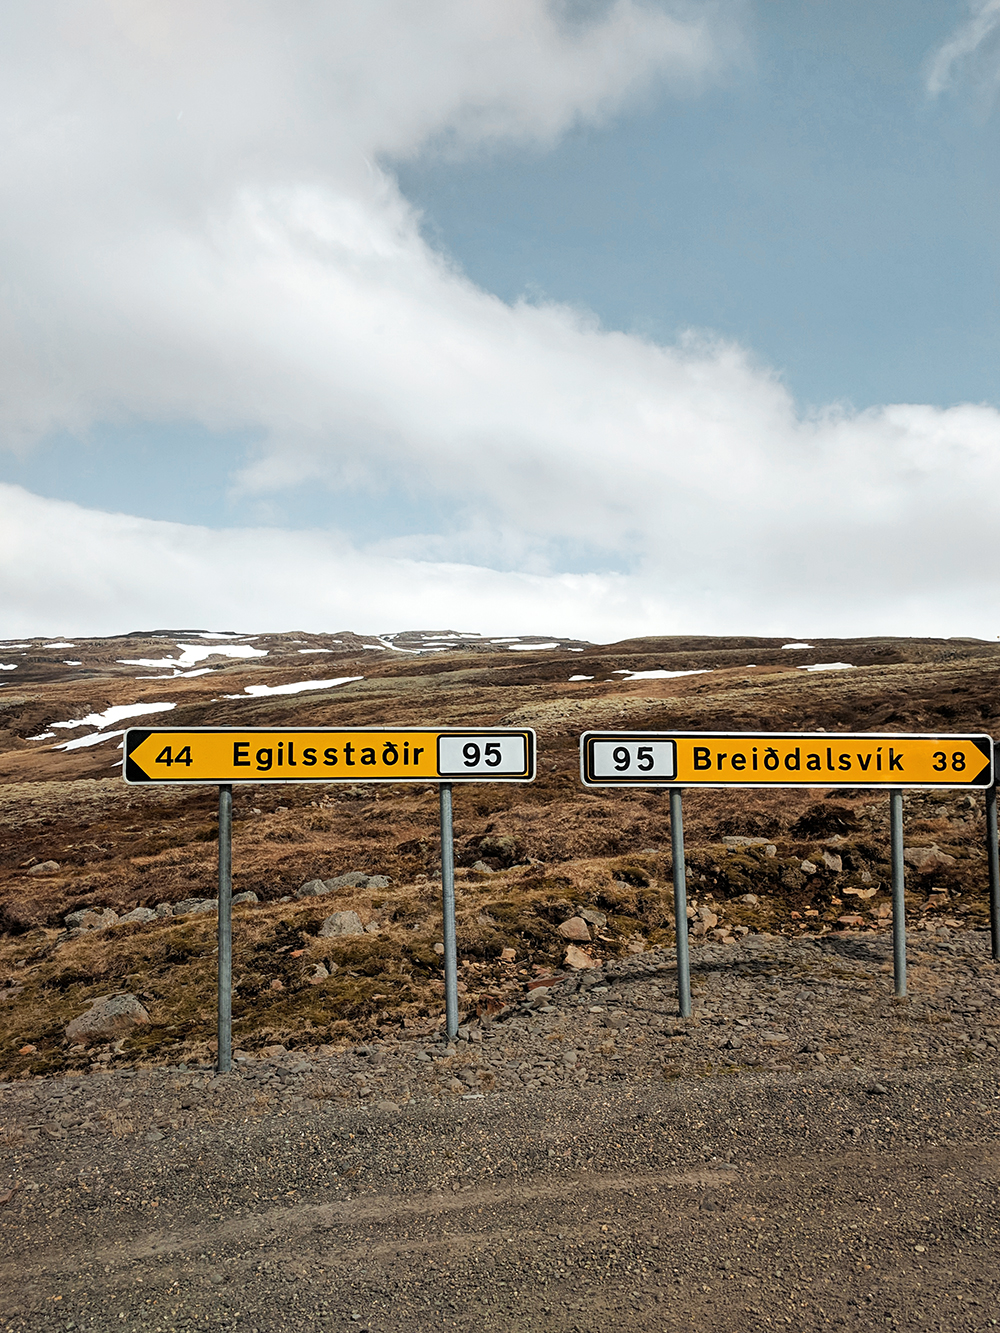 05iceland-eglisstadir-travel-roadtrip